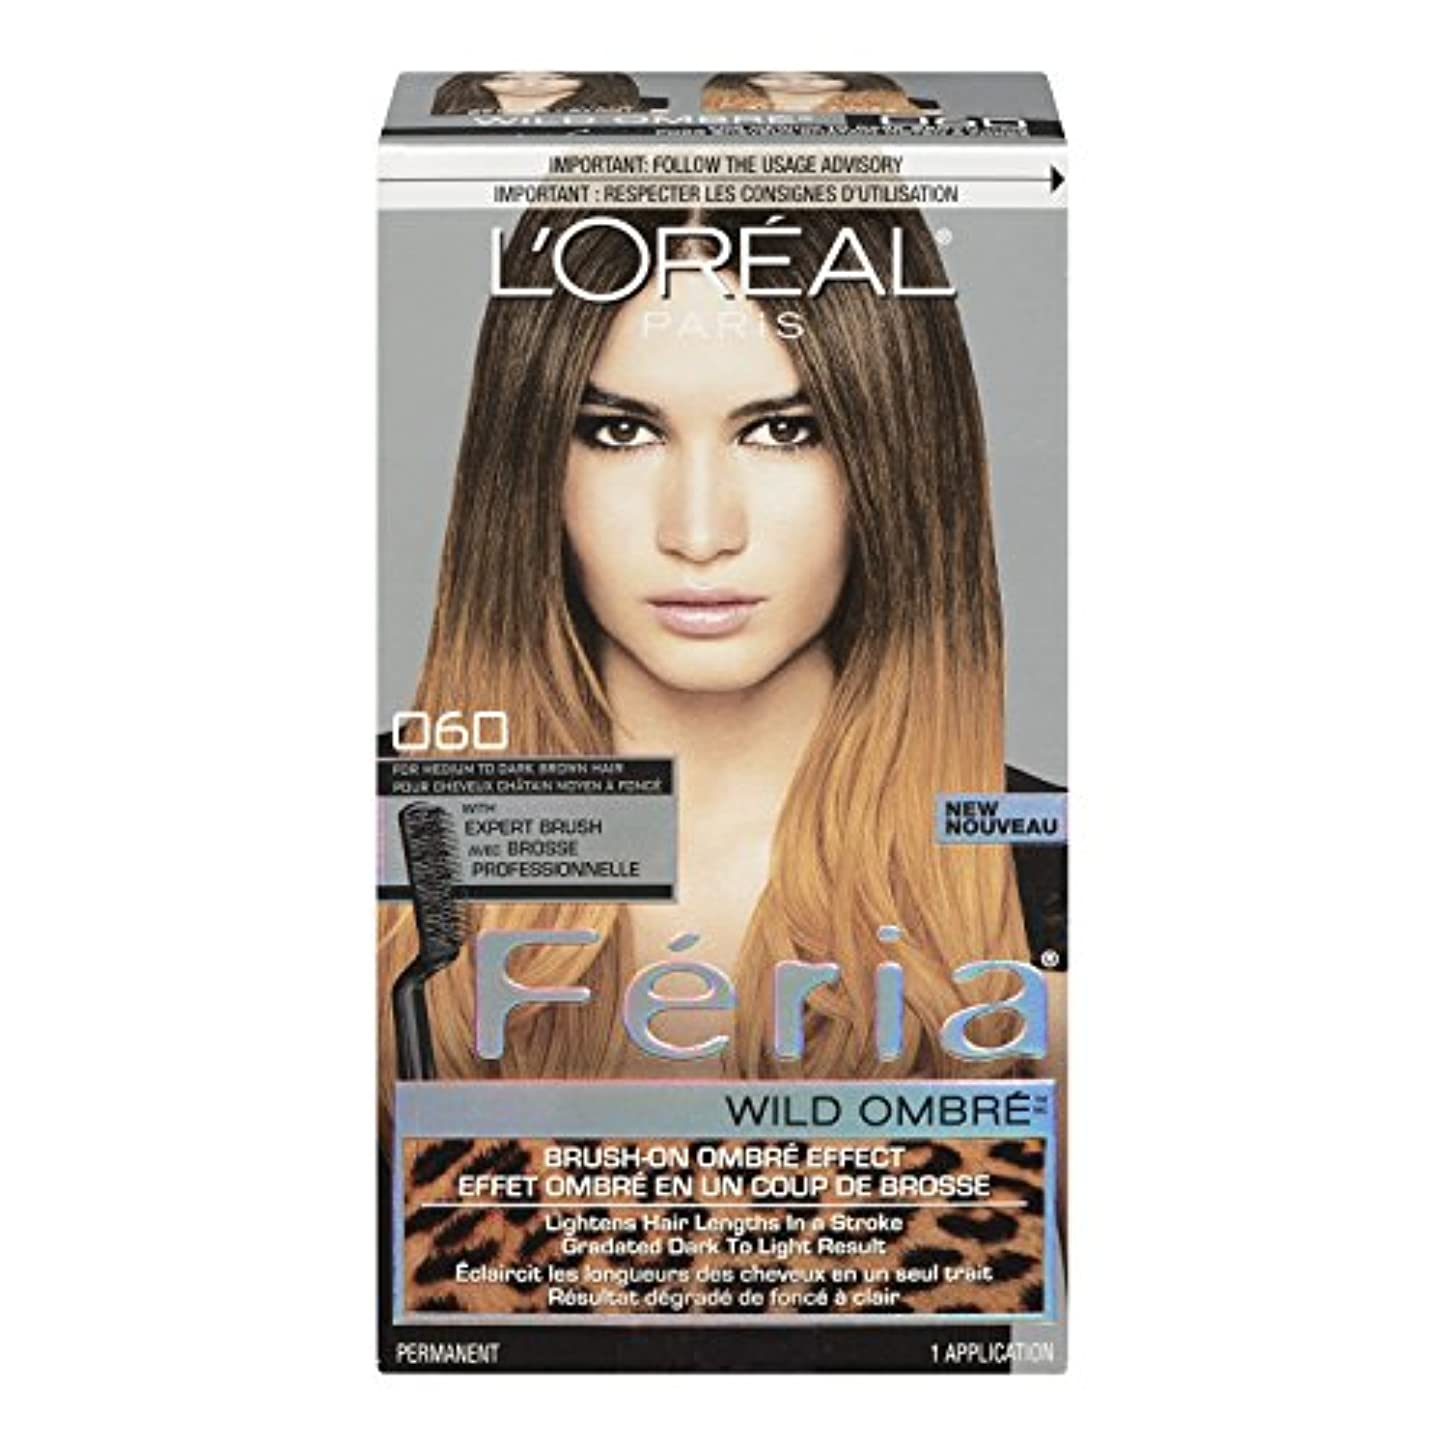 属性固執プラットフォームL'Oreal Feria Wild Ombre Hair Color, O60 Medium to Dark Brown by L'Oreal Paris Hair Color [並行輸入品]